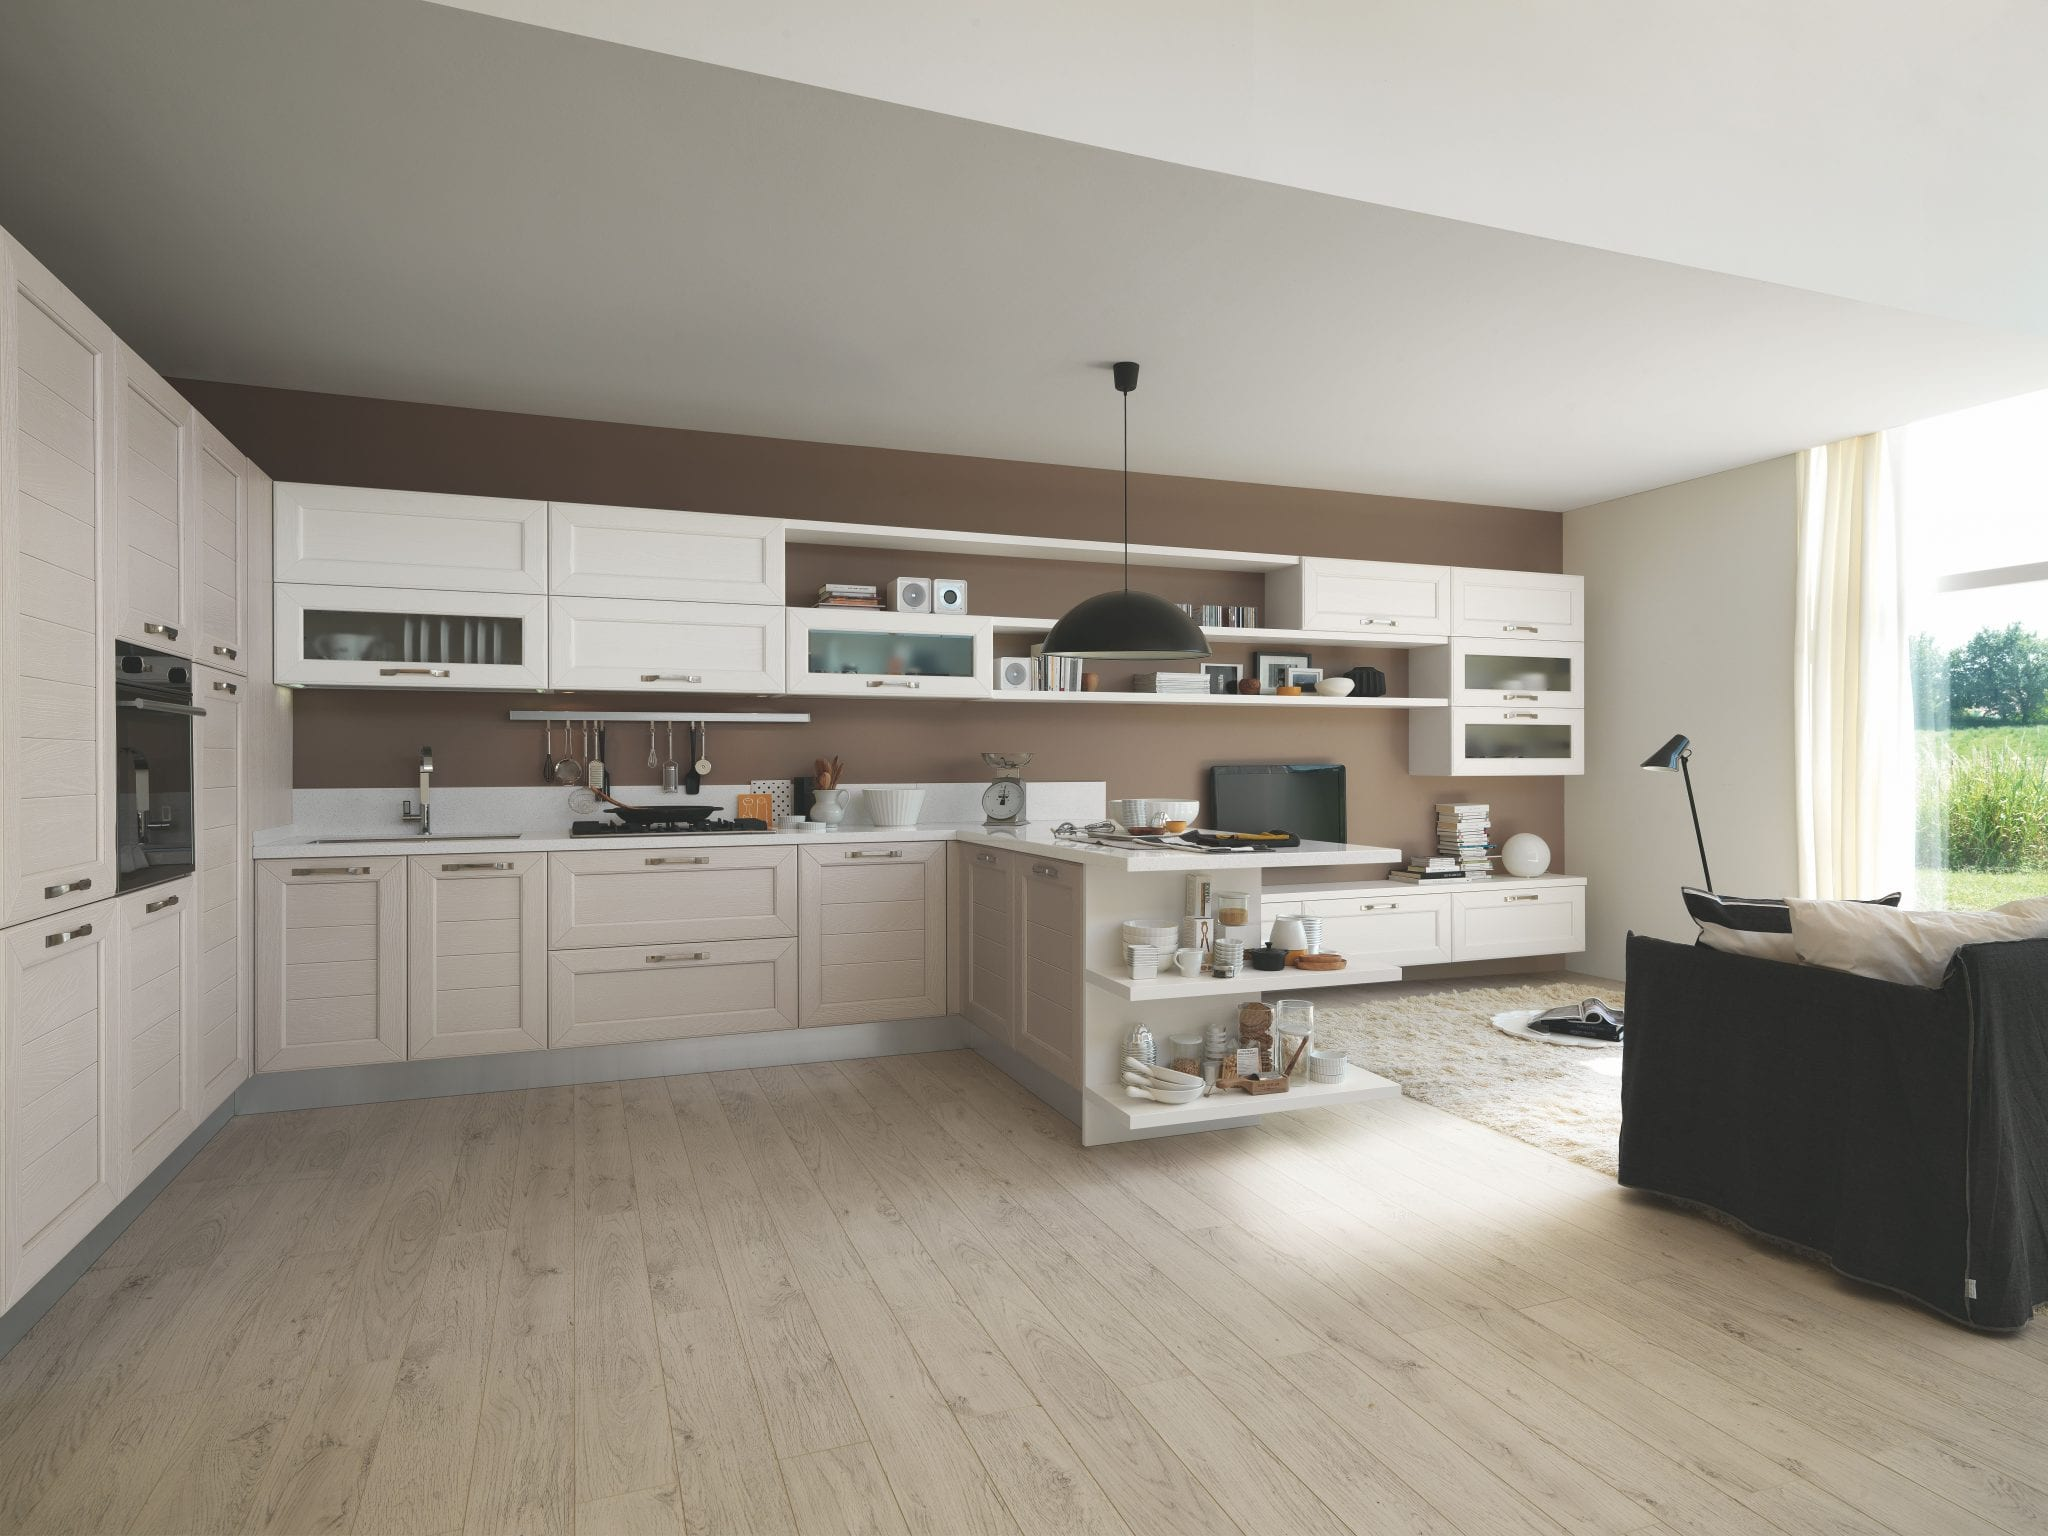 Cucine Lube Opinioni - Smart Wallpaper - Boxgro.com